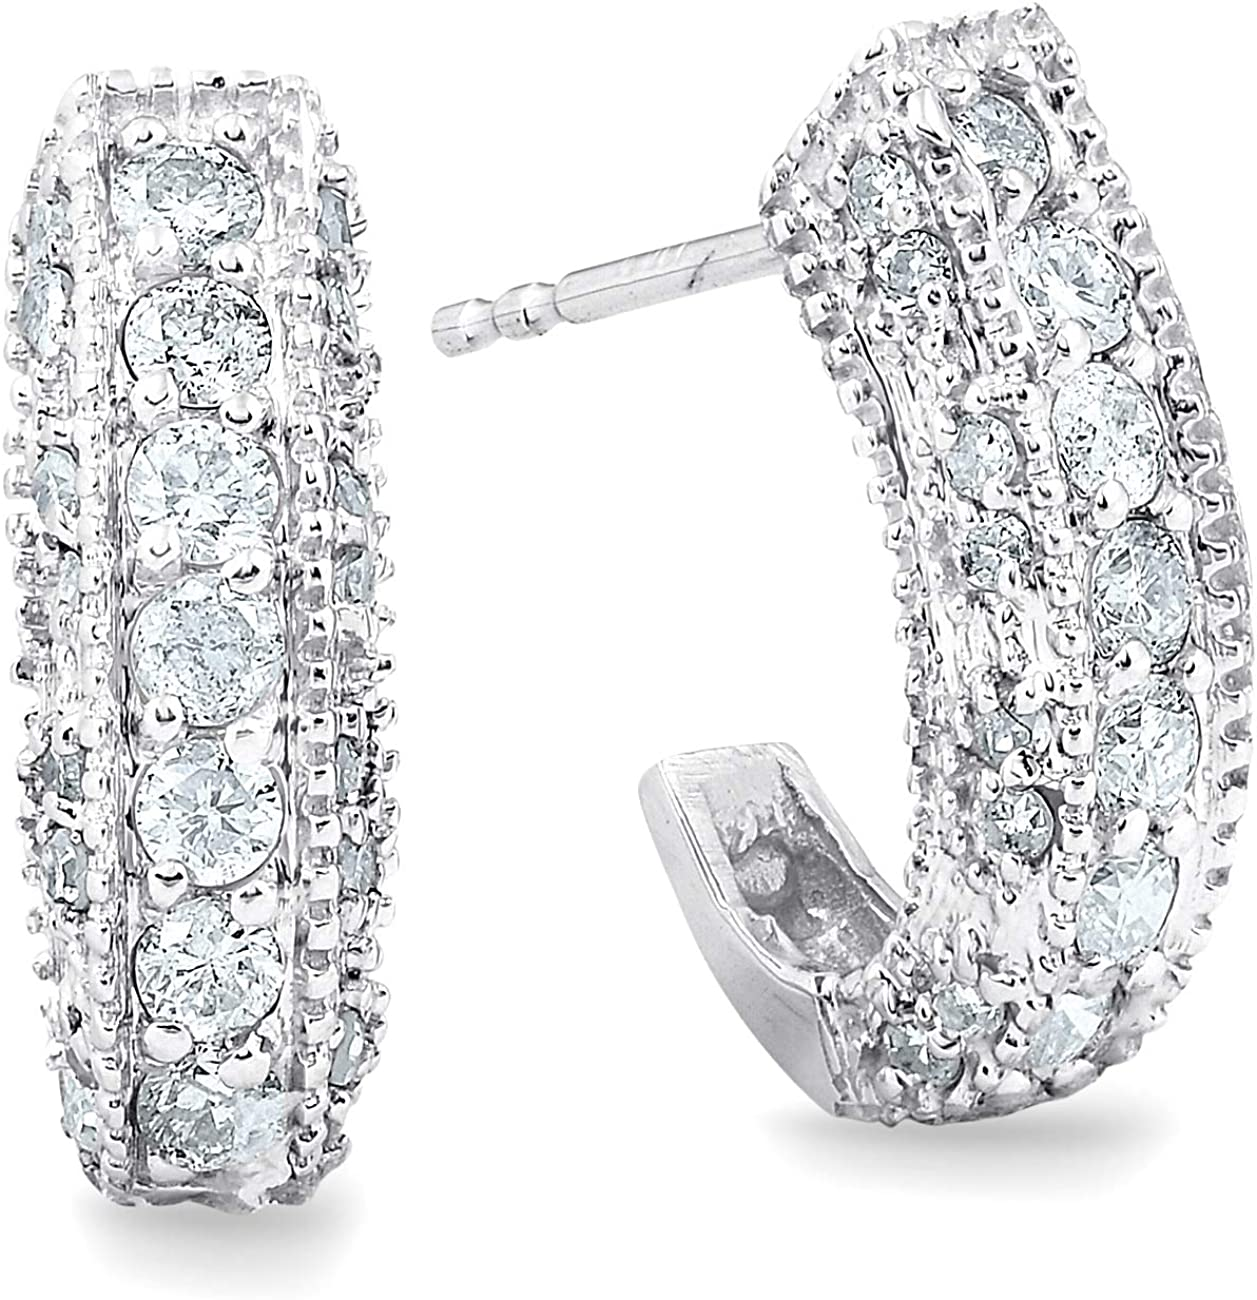 1 Max 40% OFF 2ct Vintage Pave Huggie Hoops Earrings 14K Gold Courier shipping free shipping White